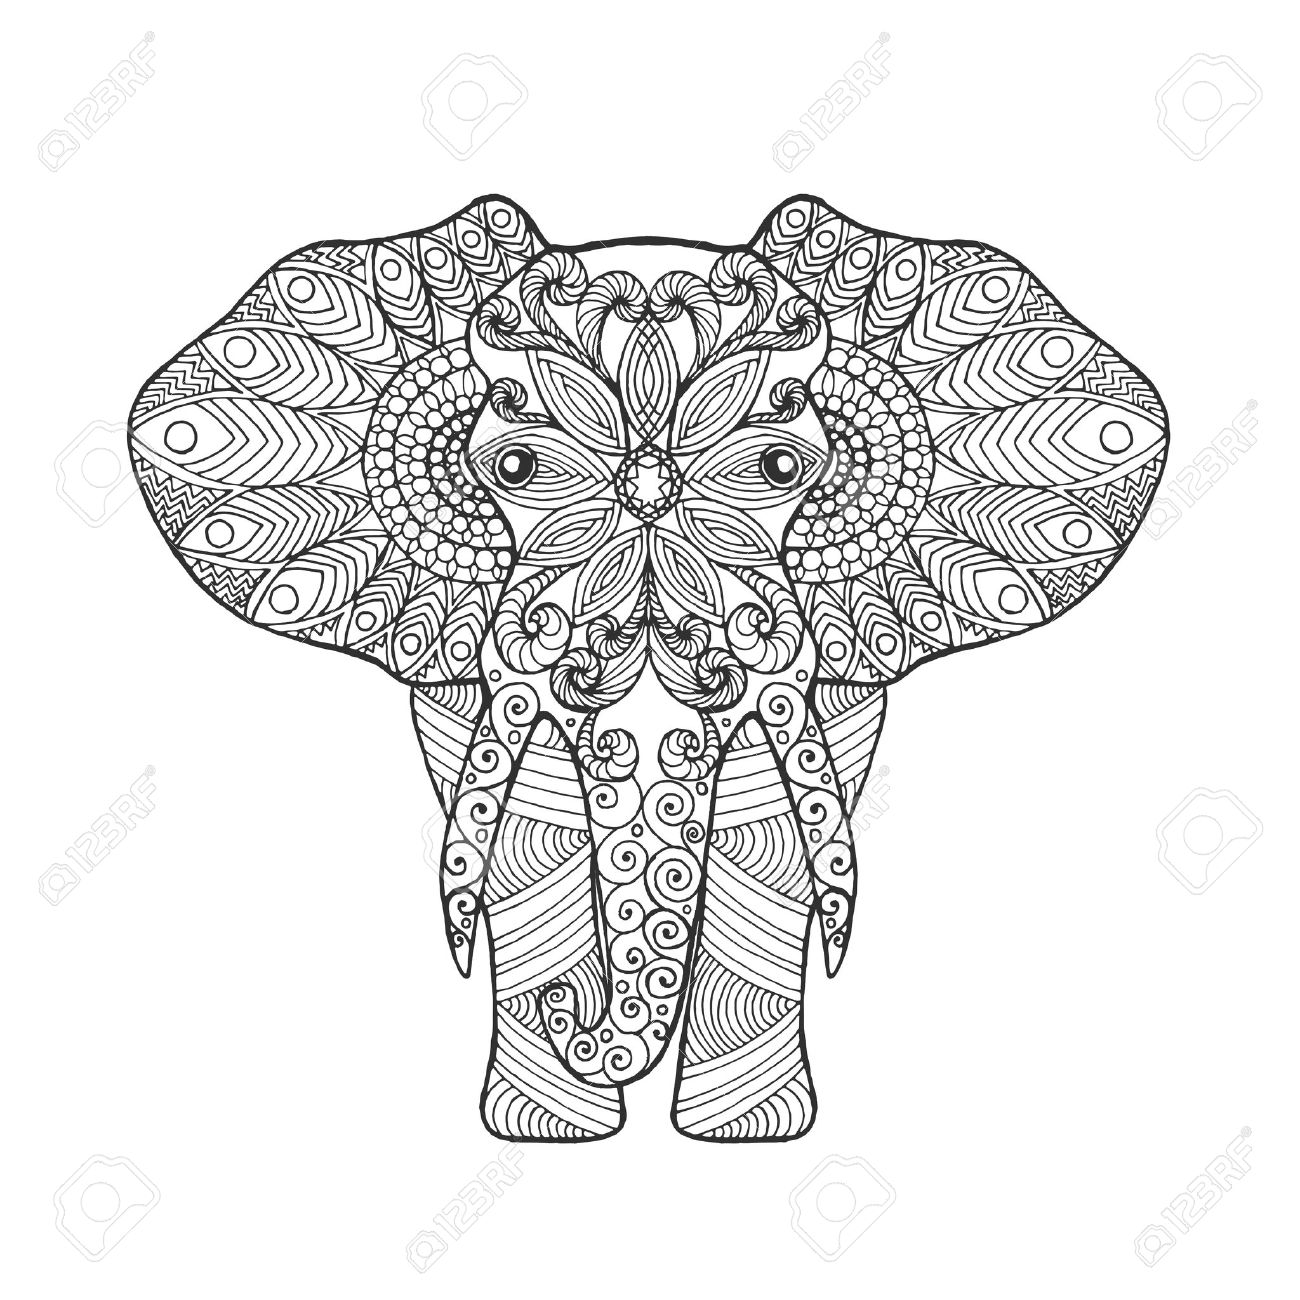 Elephant. Adult Antistress Coloring Page. Black White Hand Drawn ...